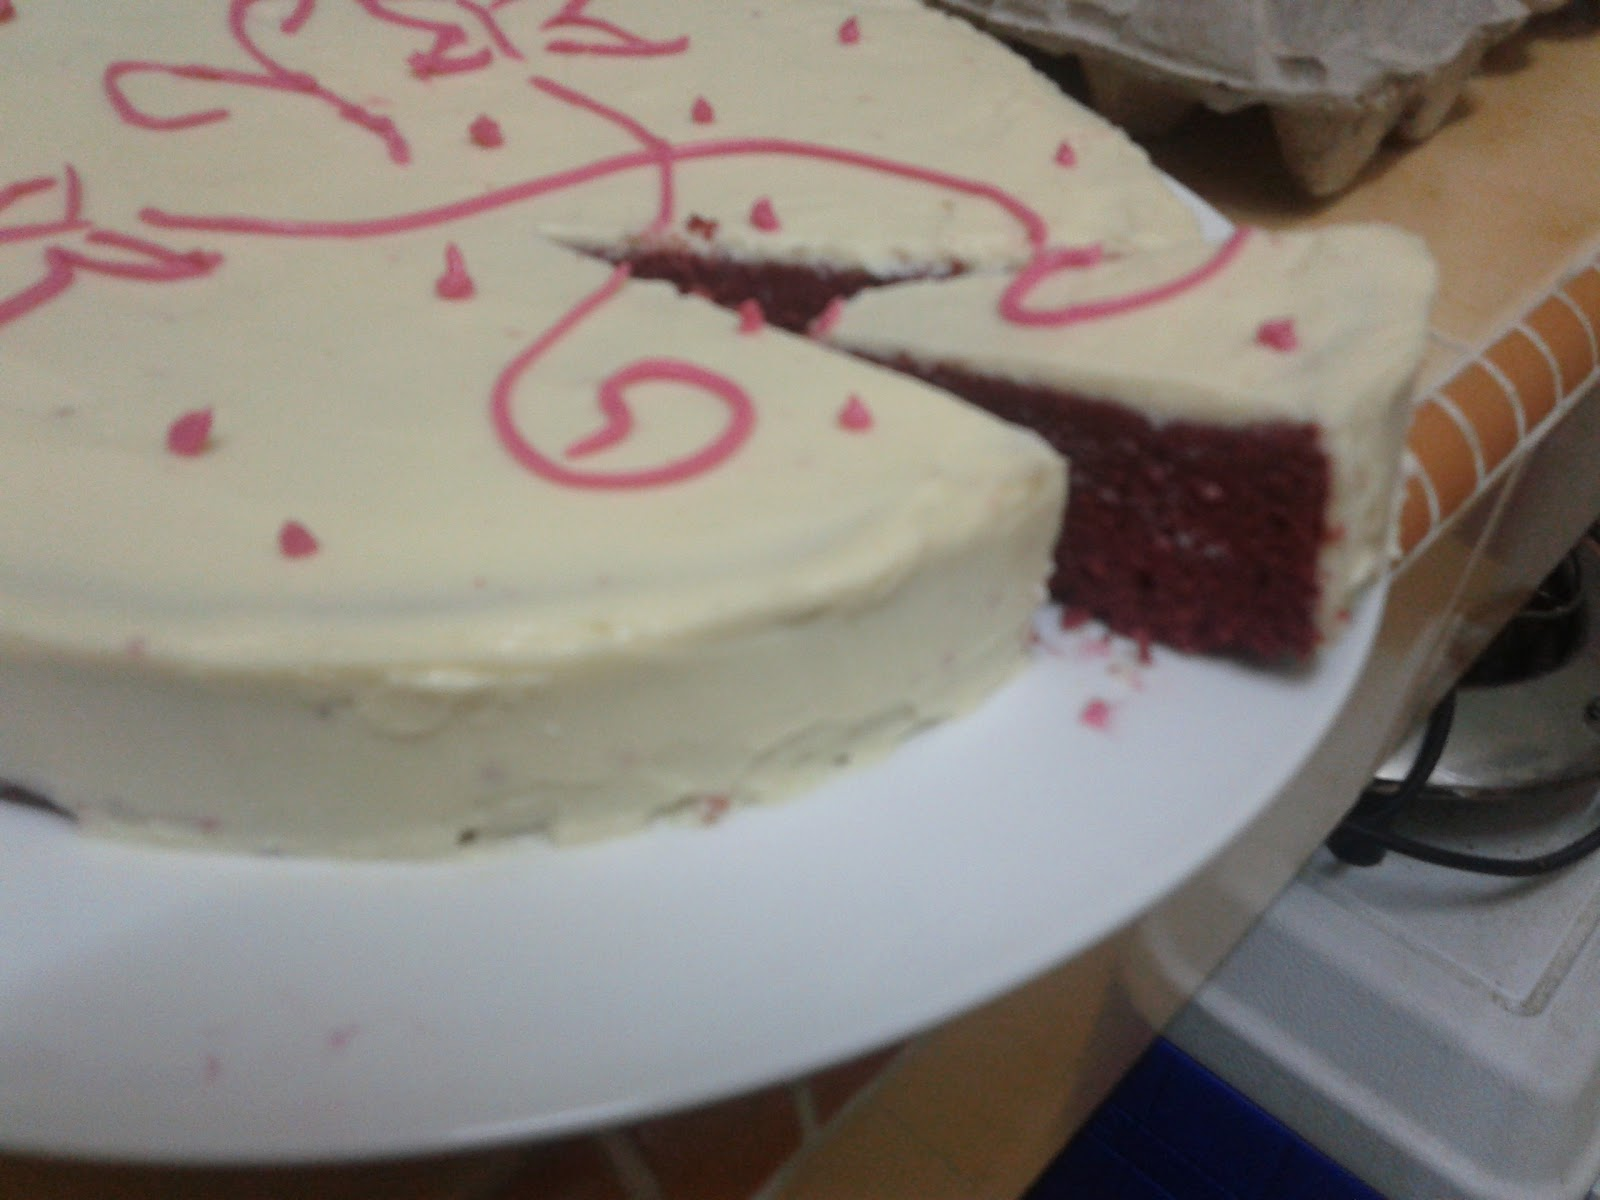 Ok I M Not Really Good In Decorating A Cake So Tunjuk Sikit Je La Gambar Ye Maybe The Looks Like Made Before Carrot With Cream